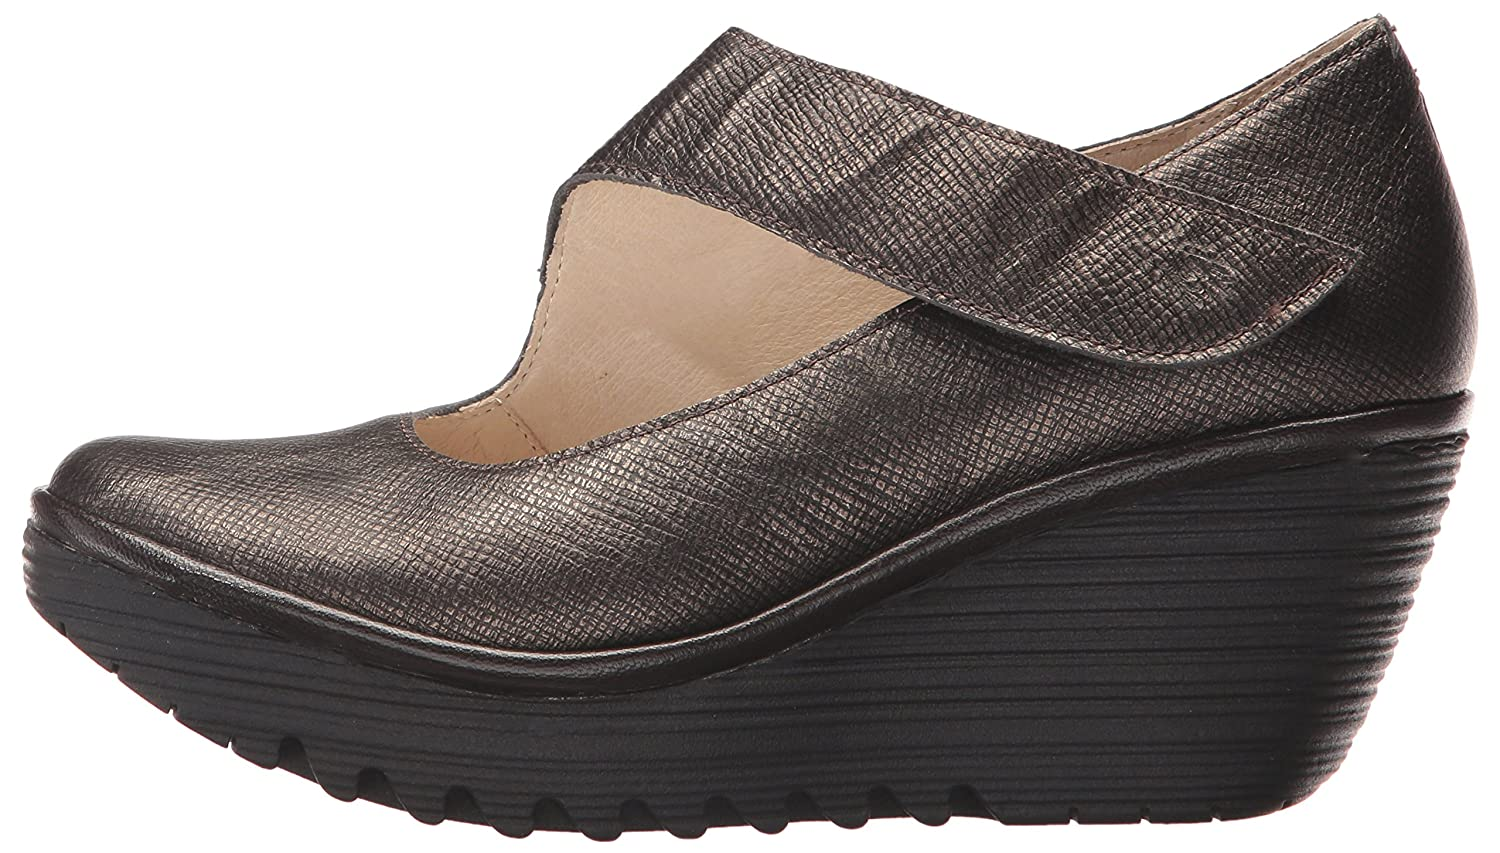 FLY London Women's Yasi682fly Wedge Pump B06WWN6G8V 41 M EU (10-10.5 US)|Bronze/Chocolate Franz/Mousse